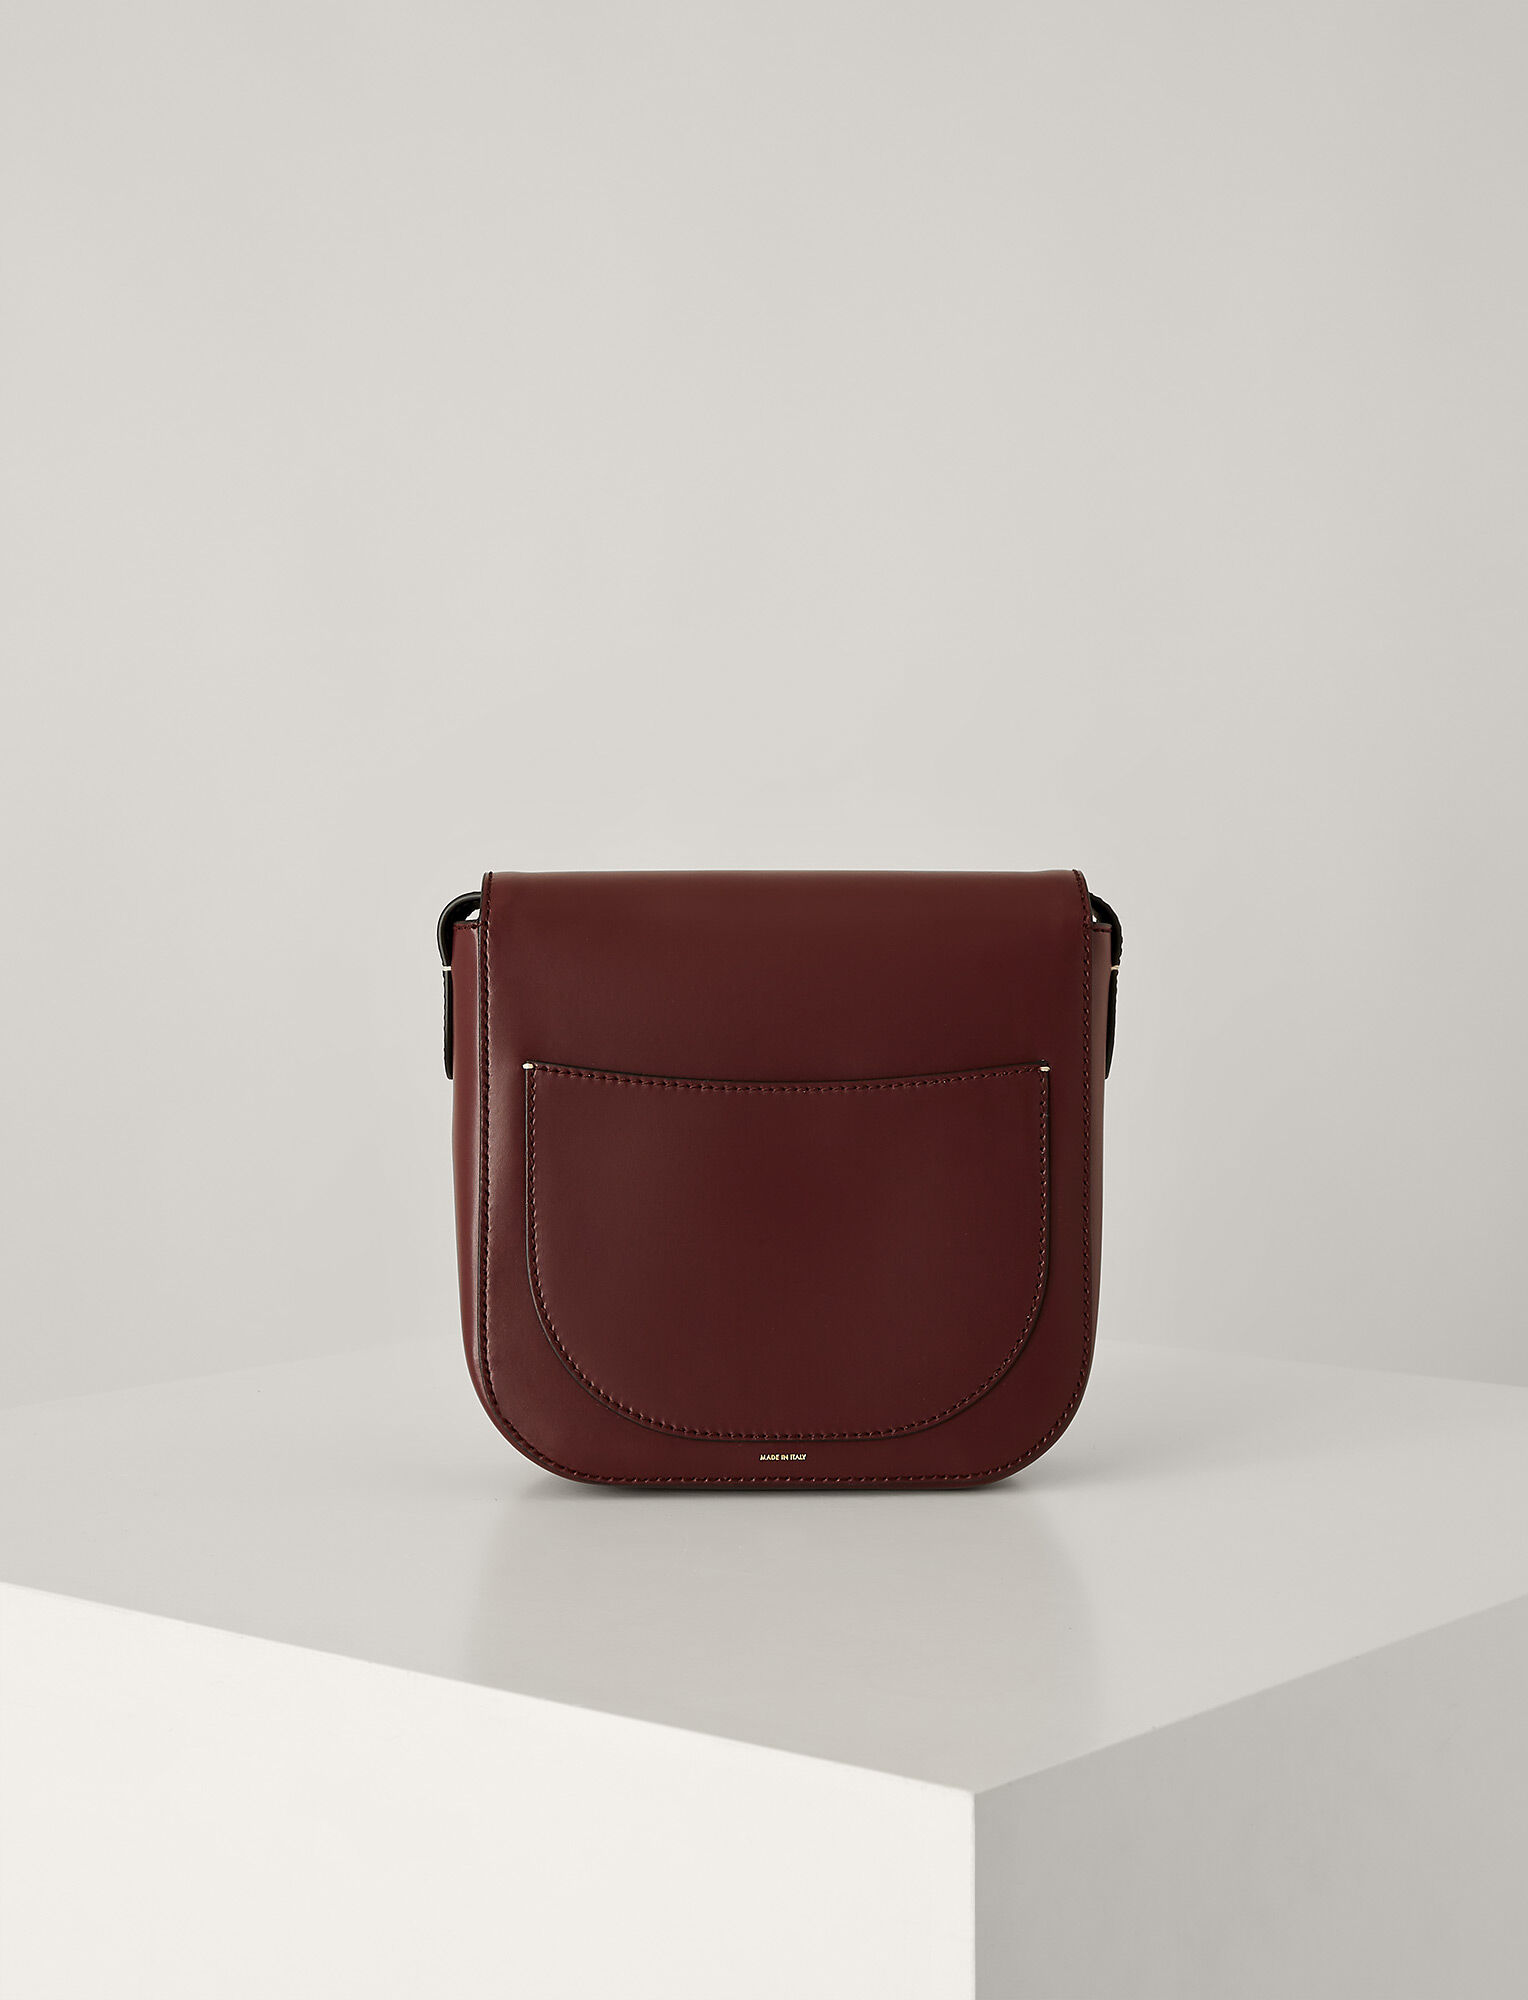 Joseph, Knight 25 Leather Bag, in GARNET